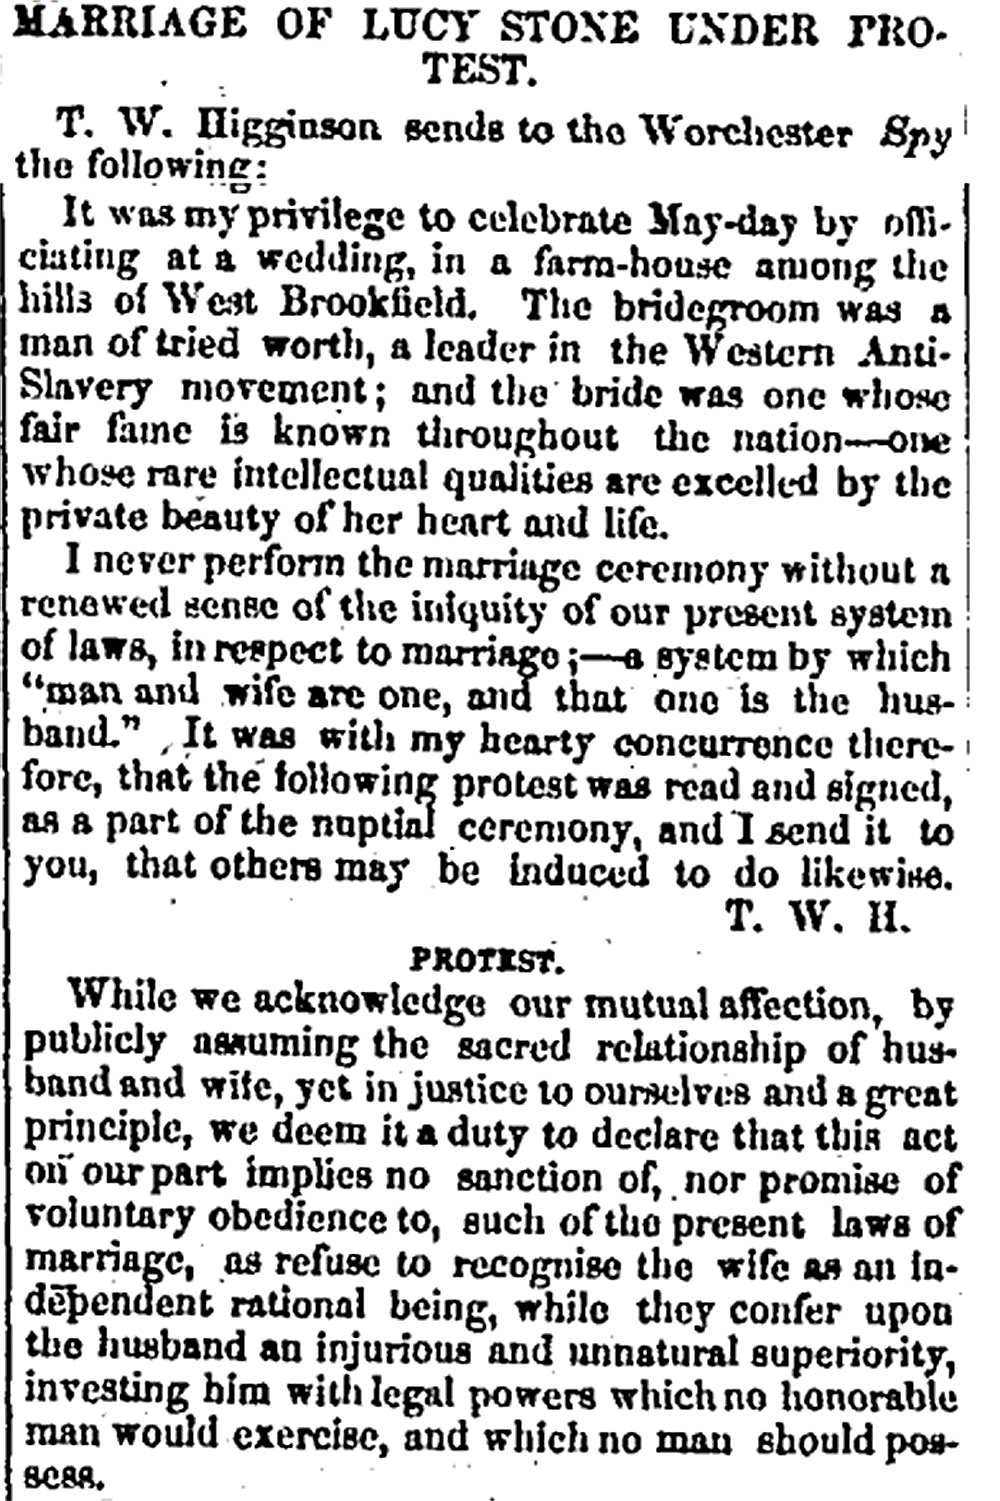 """Article from the """"Republican Banner,"""" May 9, 1855."""